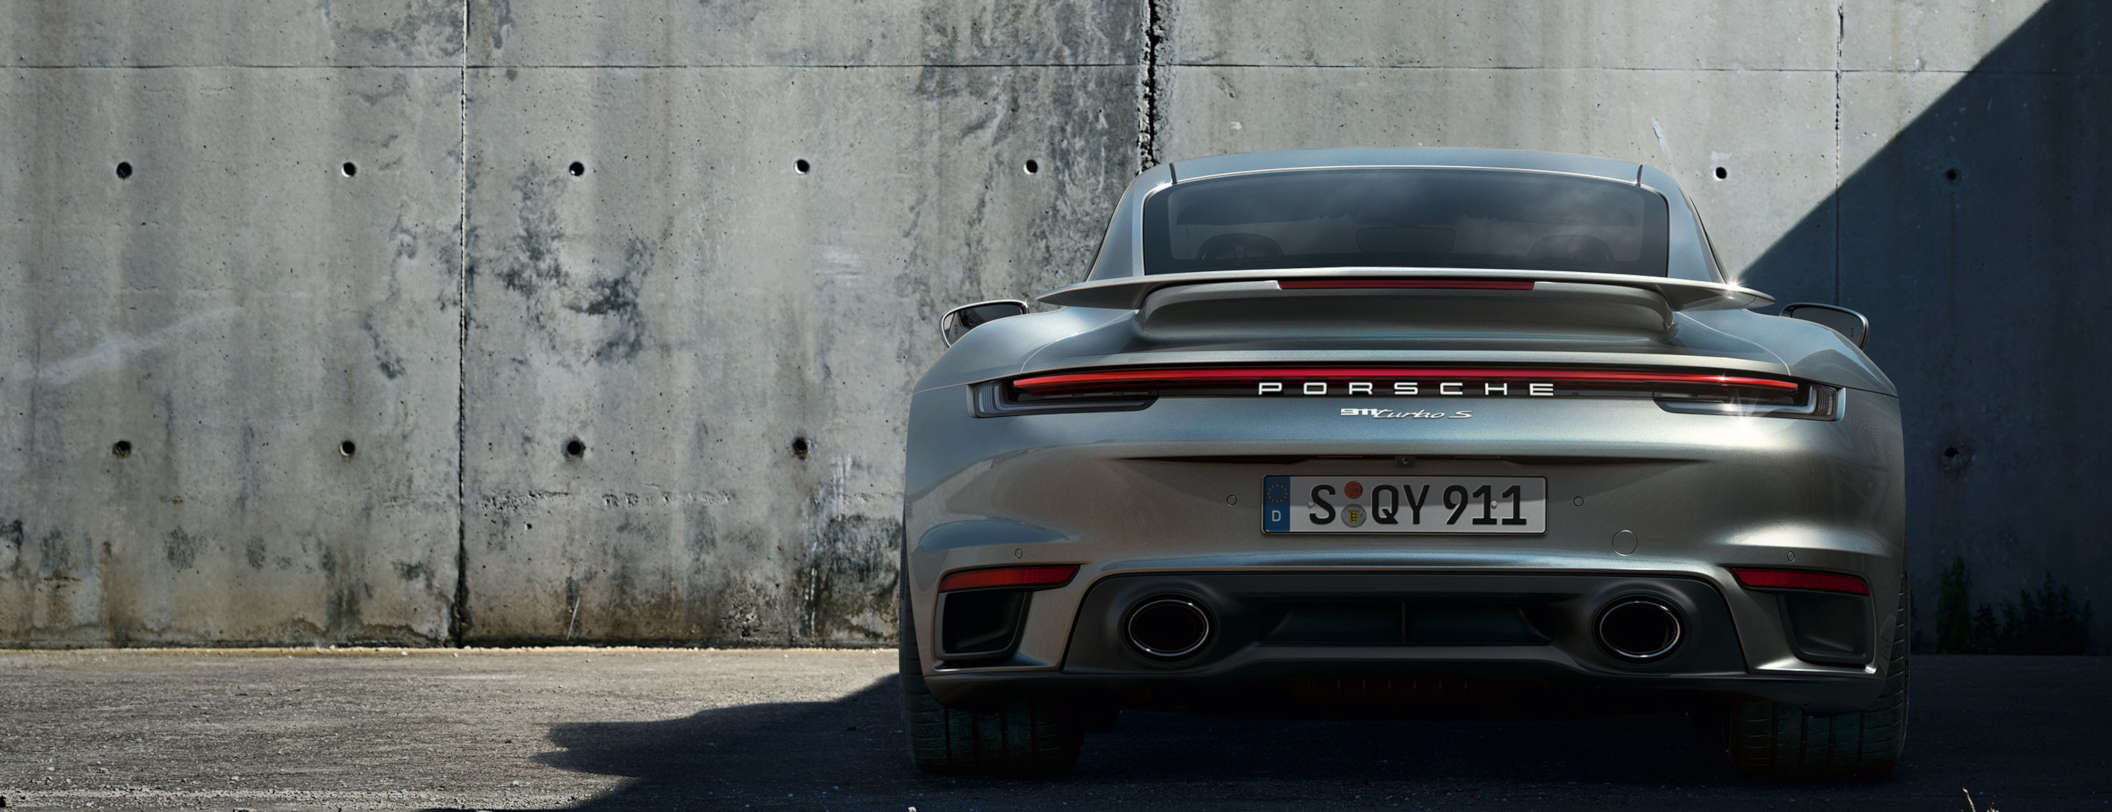 New 911 Turbo S – Relentless